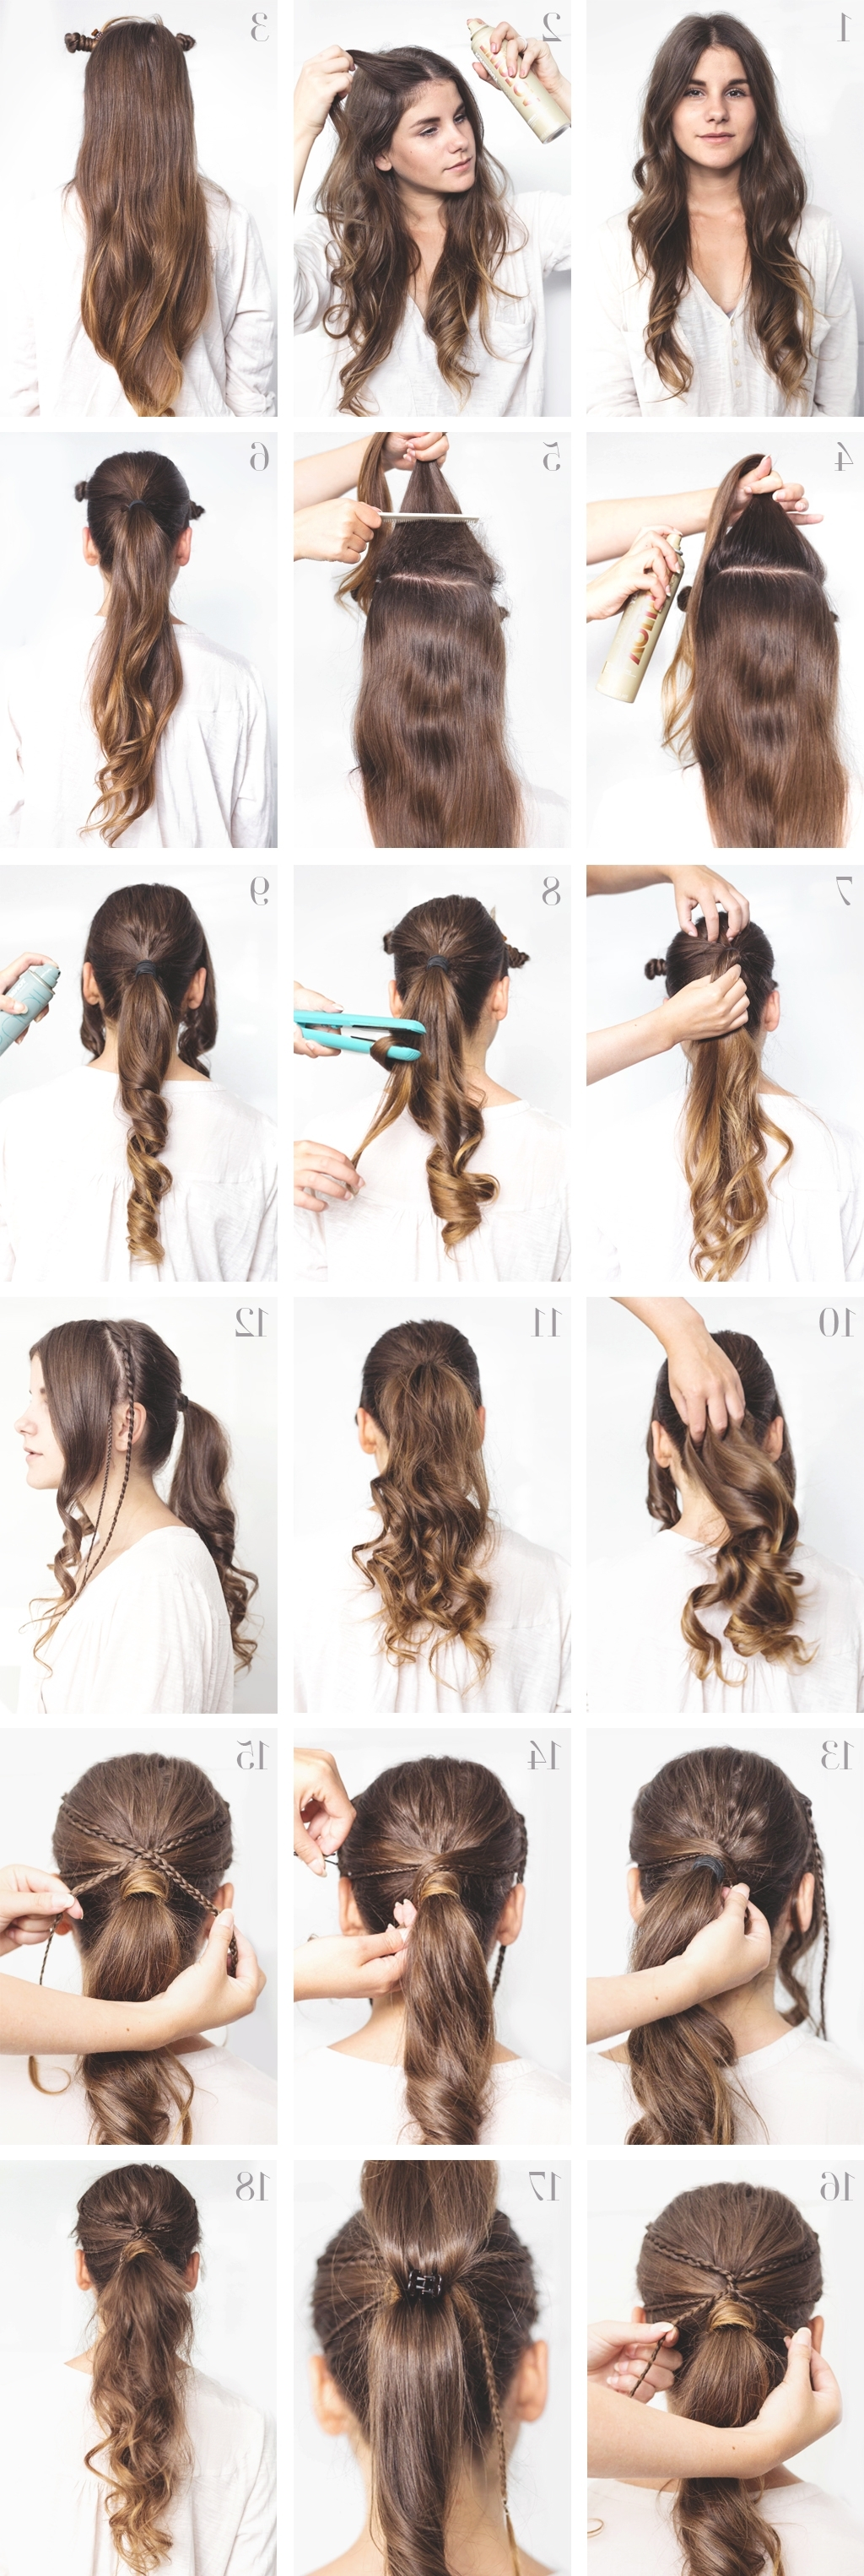 Tutorial: Voluminous Ponytail For Everyday › Thefashionfraction For Widely Used High Voluminous Ponytail Hairstyles (View 8 of 20)